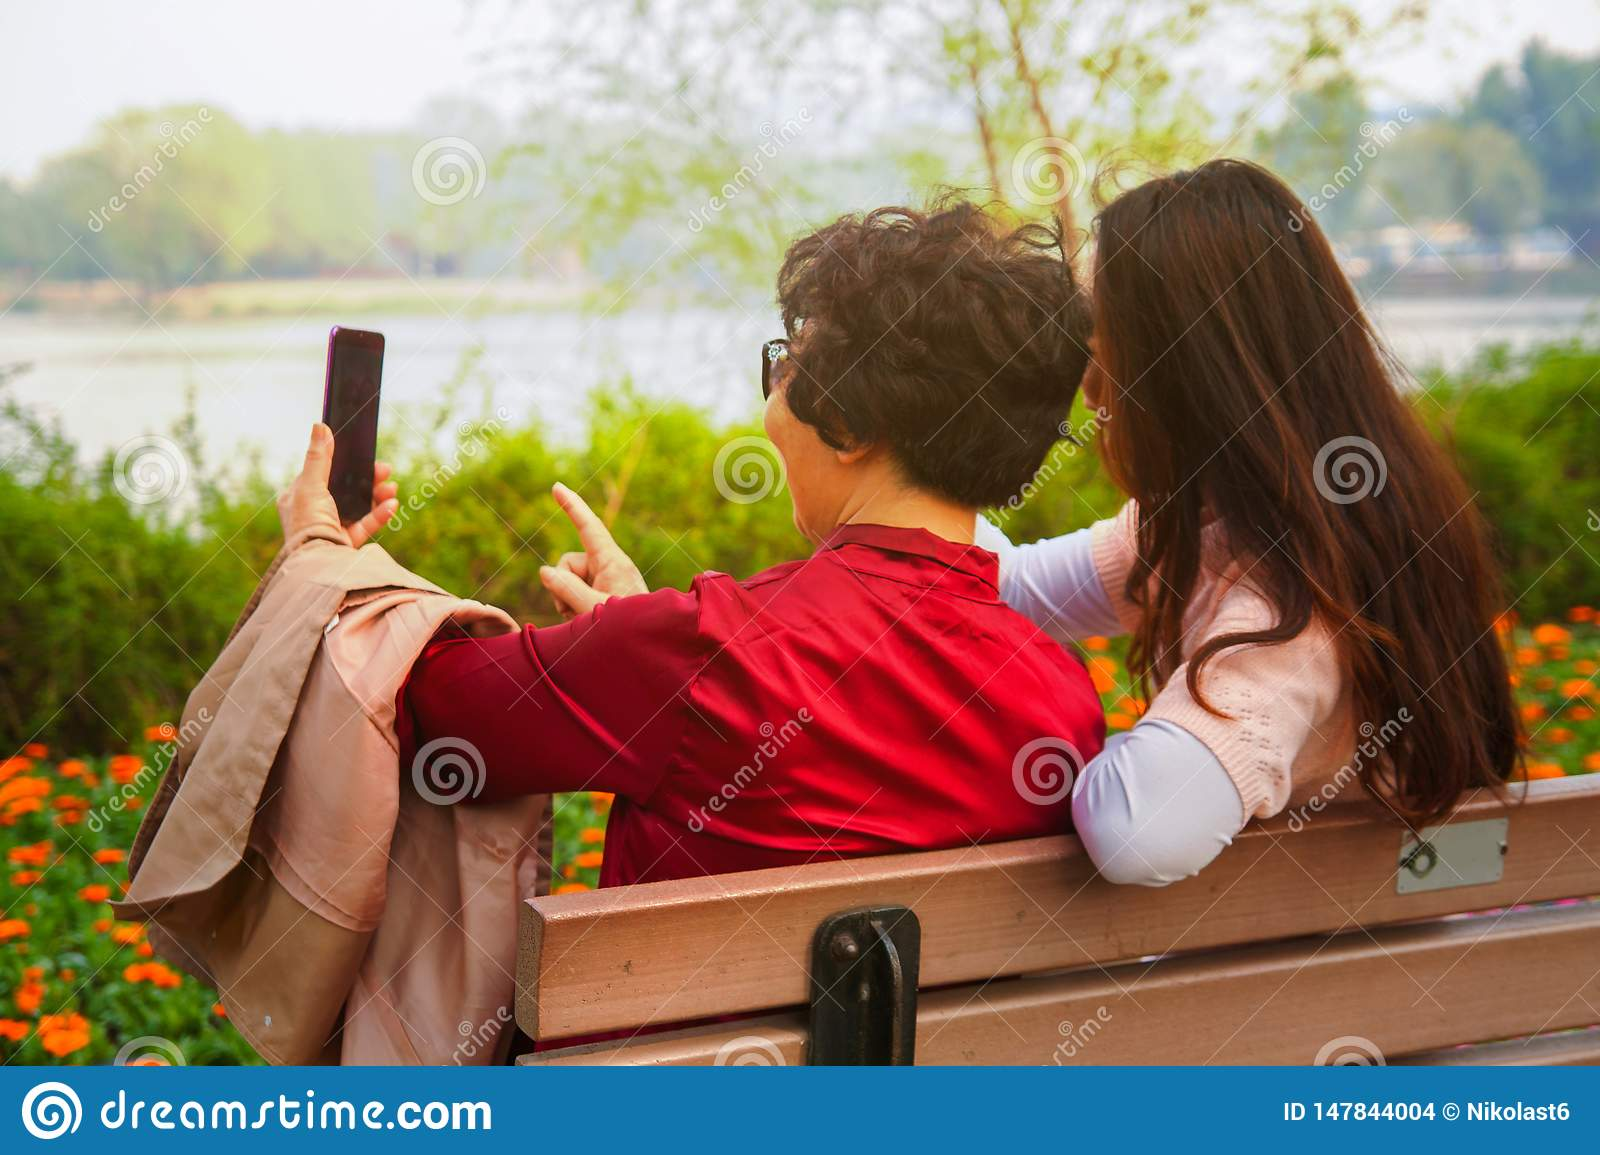 Family, technology and people concept - happy daughter and senior mother with smartphone sitting on park bench and taking